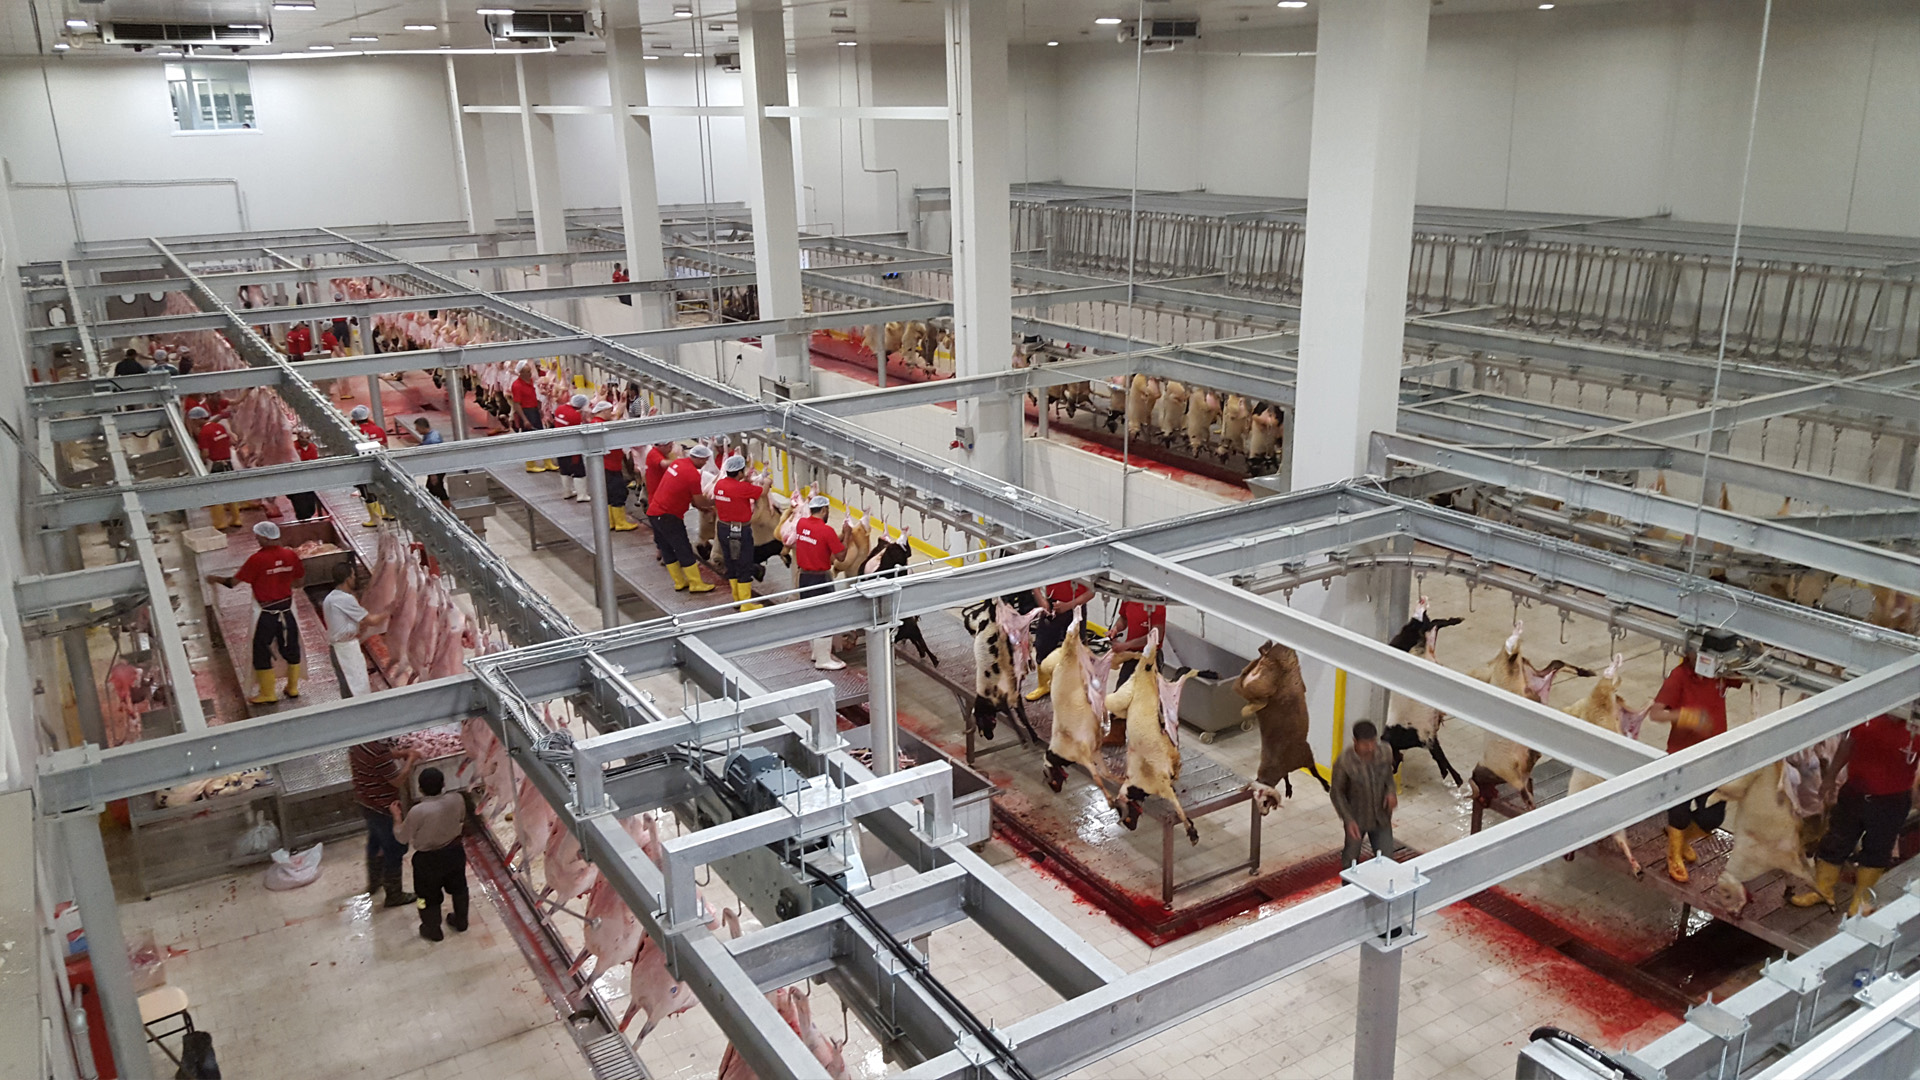 Red Meat Slaughterhouse and Processing Facilities